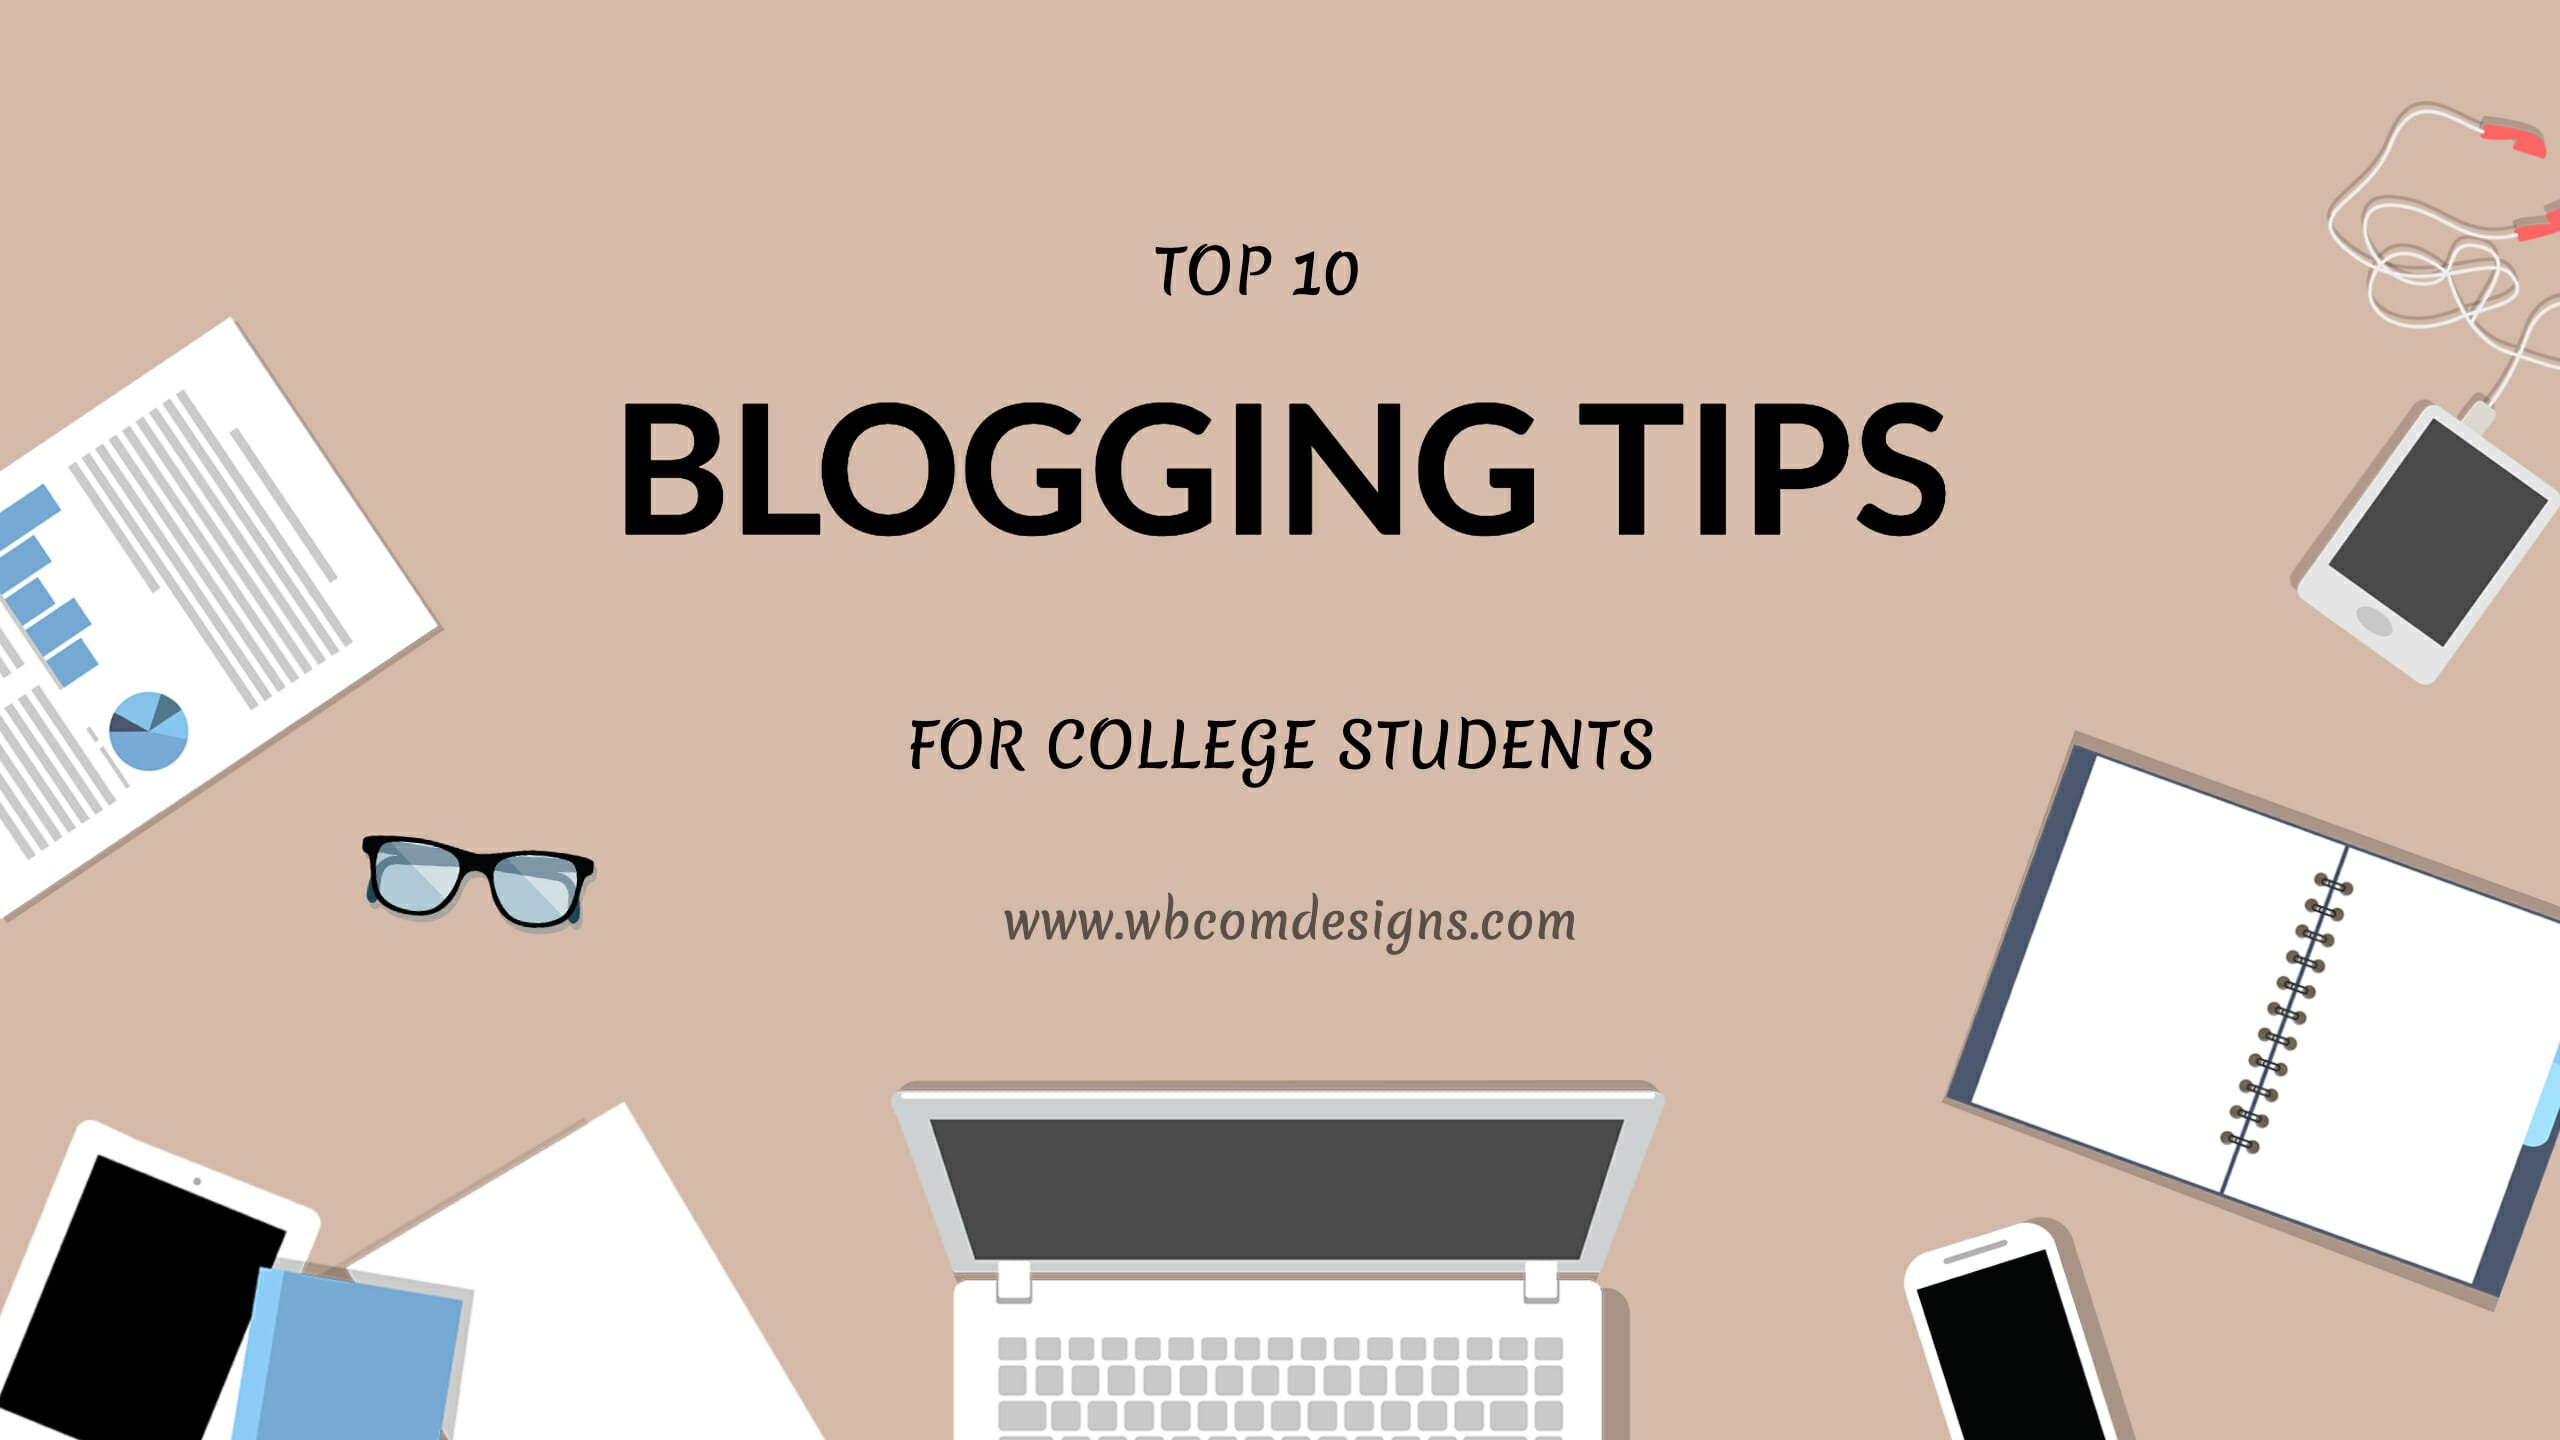 BLOGGING TIPS FOR COLLEGE STUDENTS